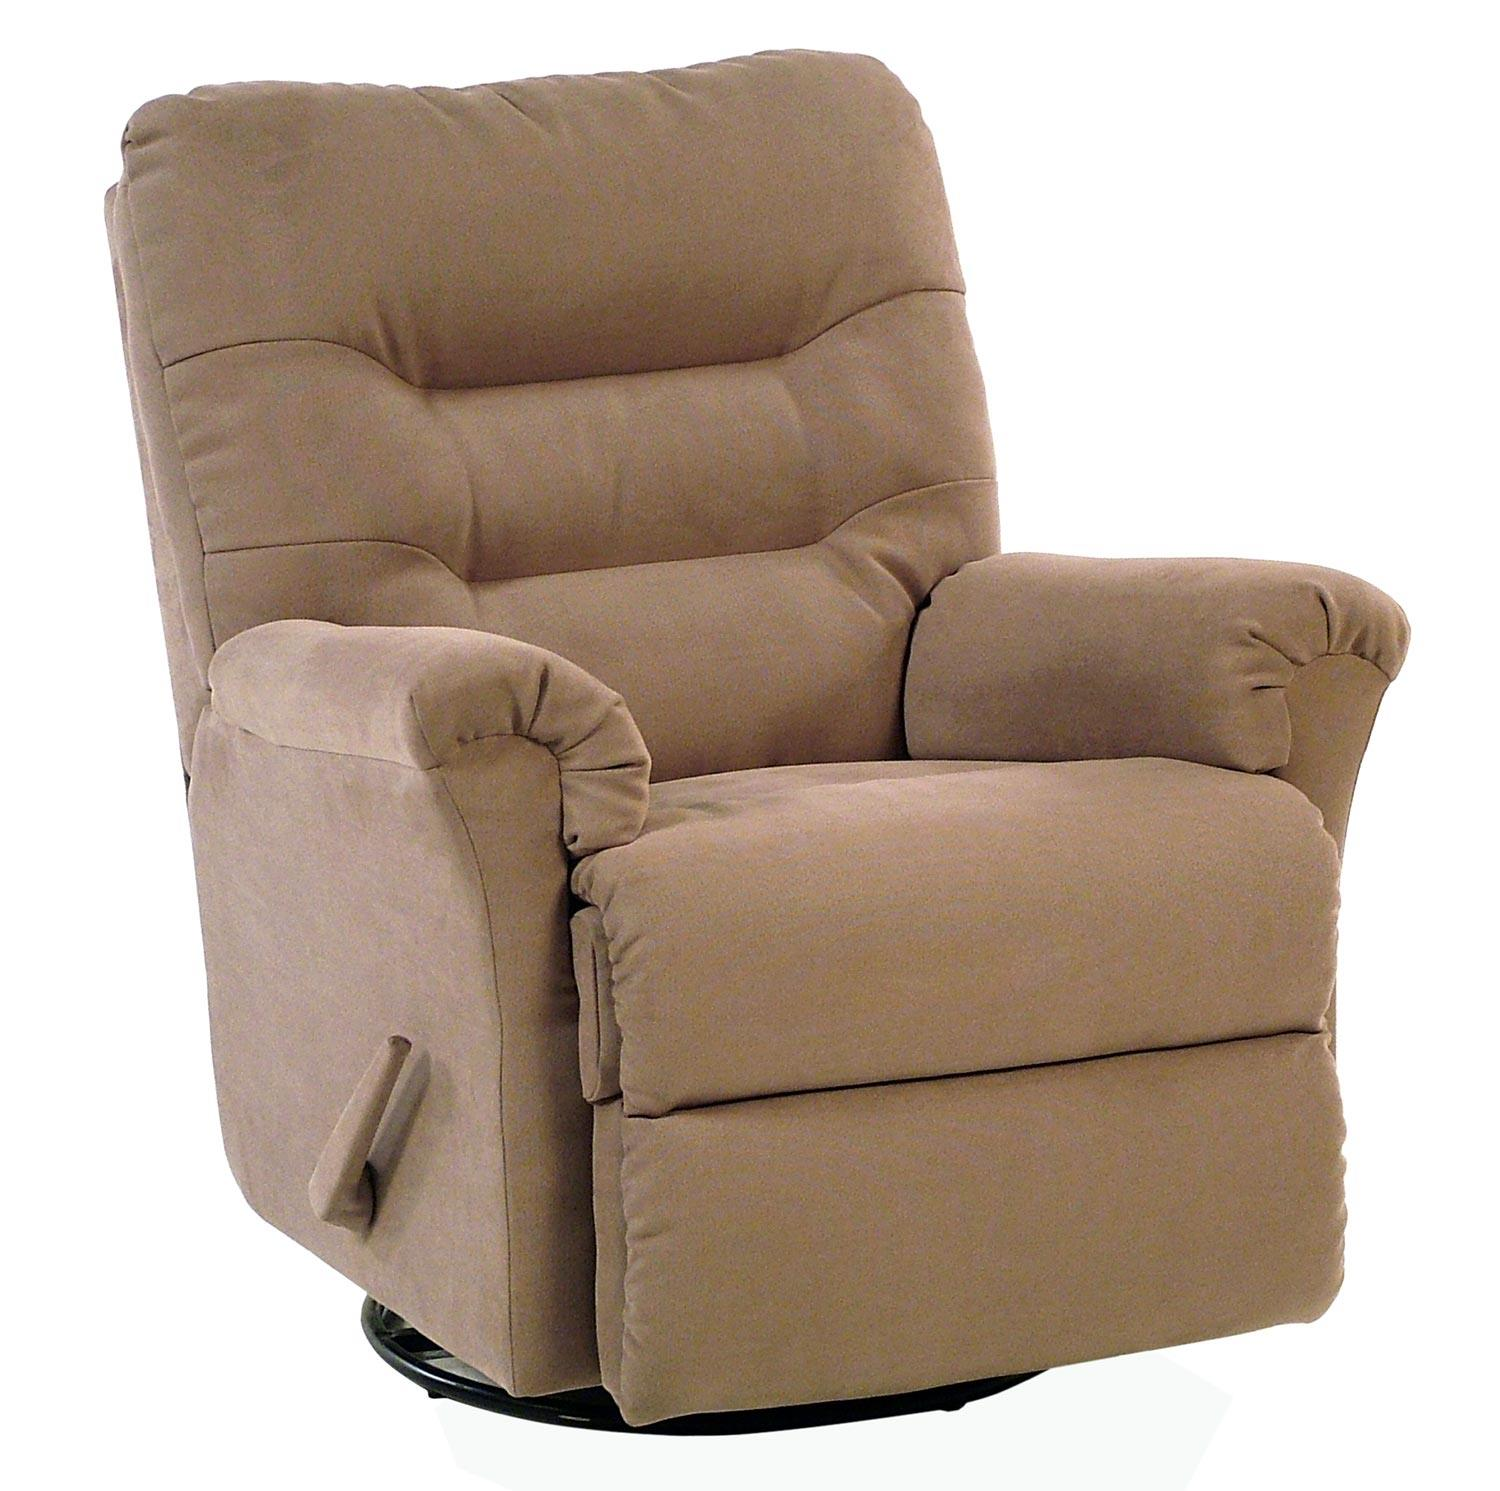 Palliser Mila Swivel Rocker Recliner  - Item Number: 46039-33